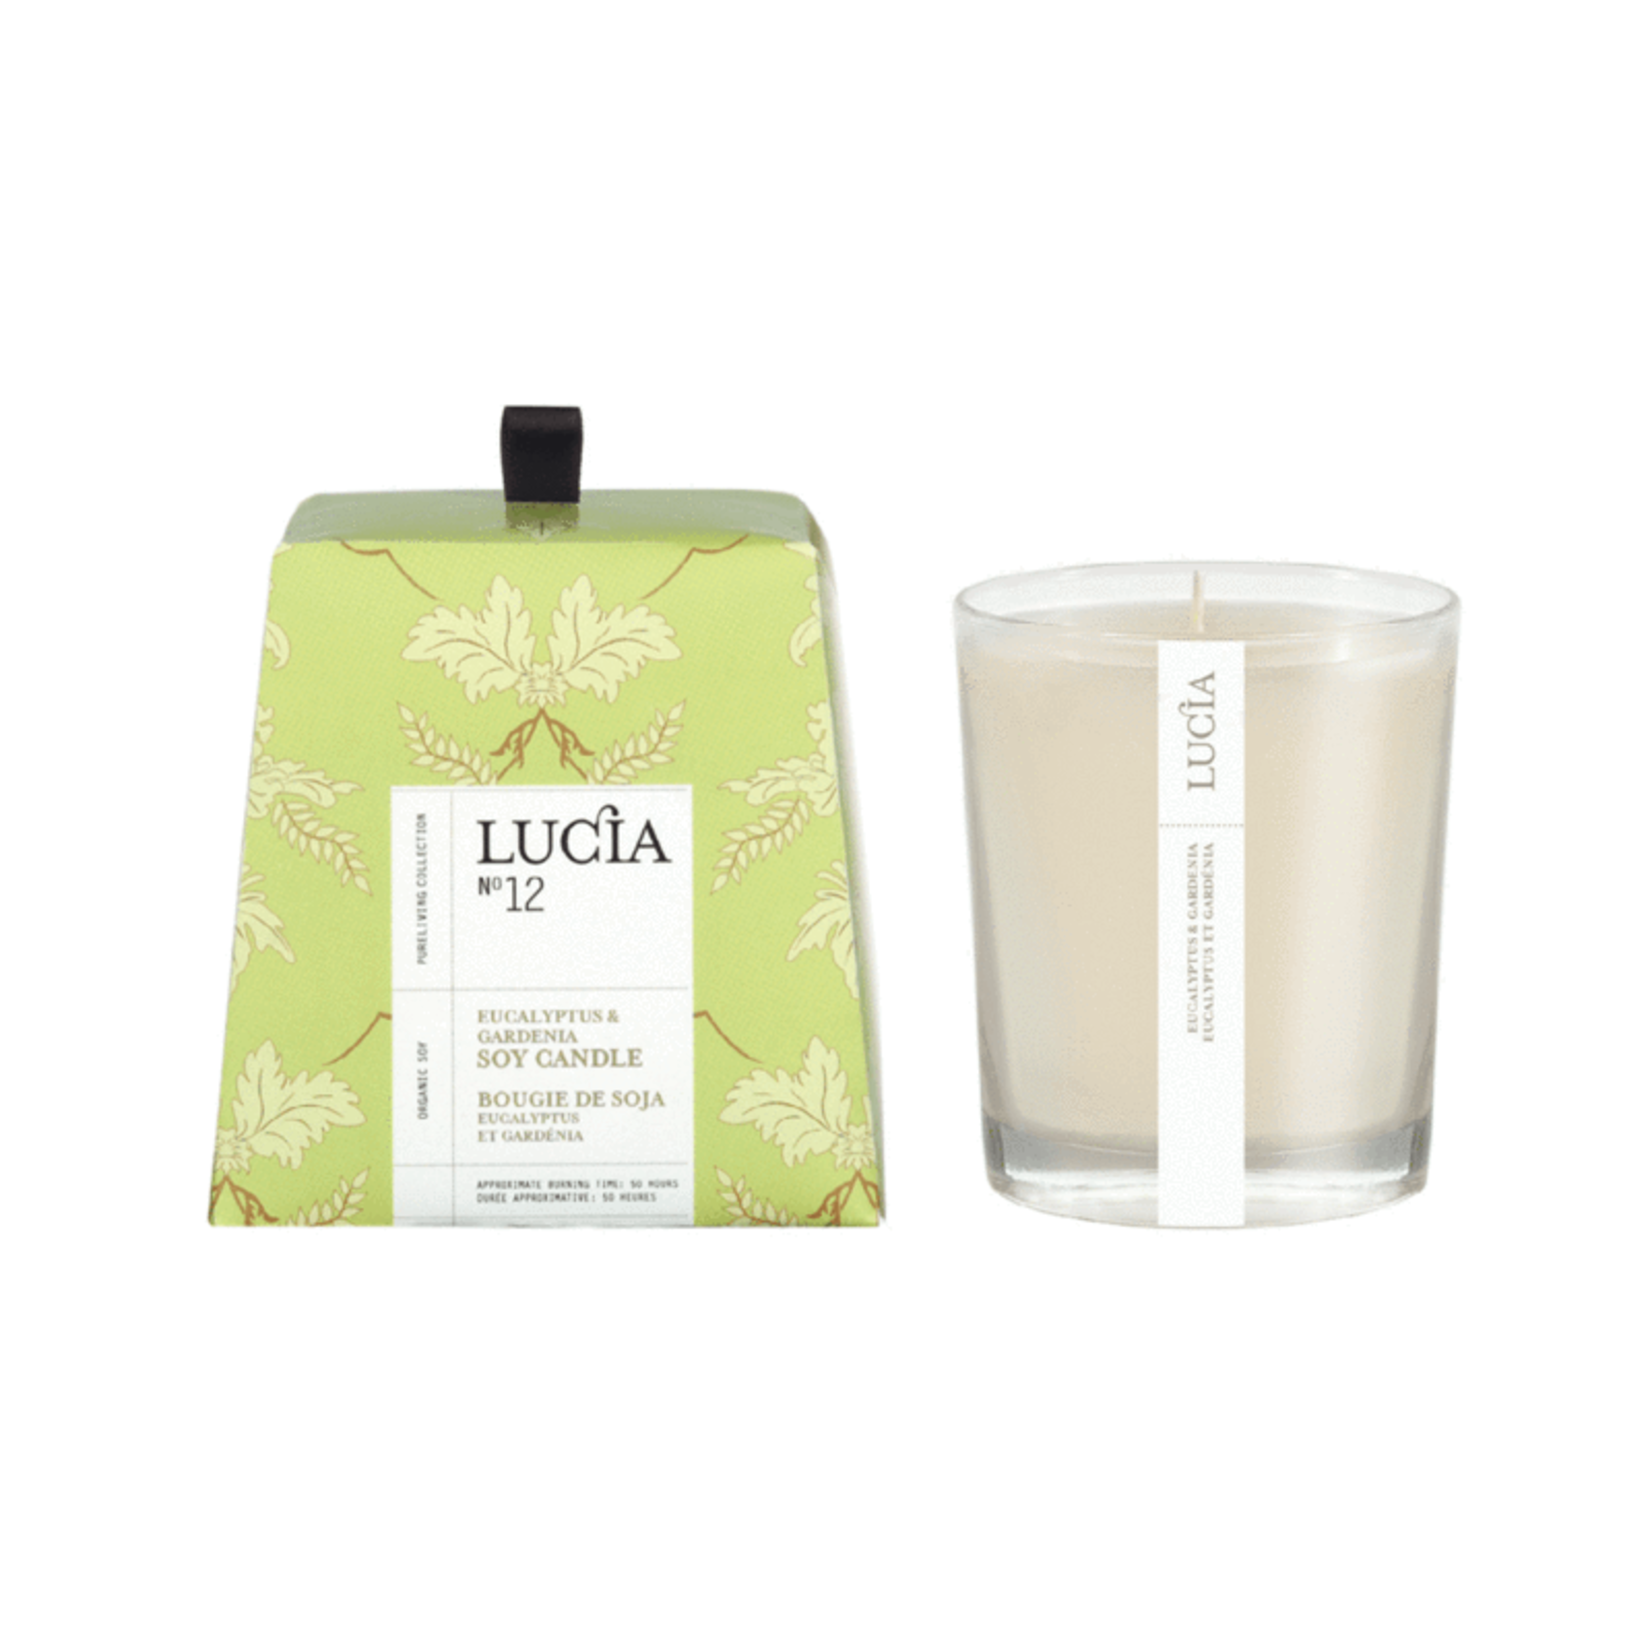 Lucia LUCIA Bougie 20H no12